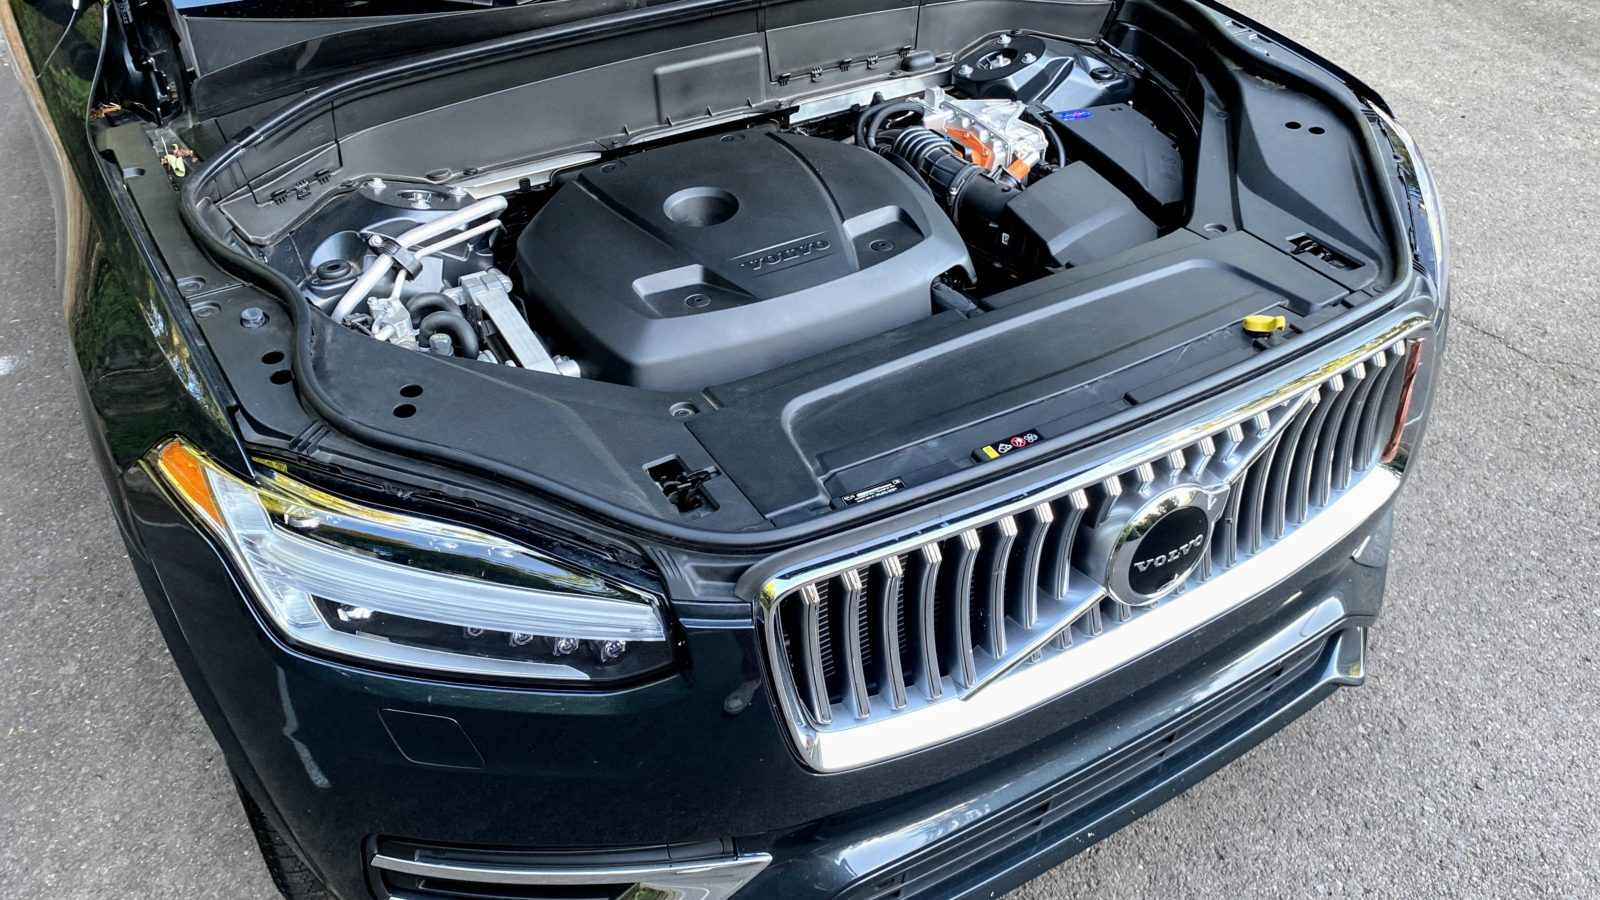 as-it-turns-toward-evs,-volvo-spins-off-internal-combustion-engine-operations